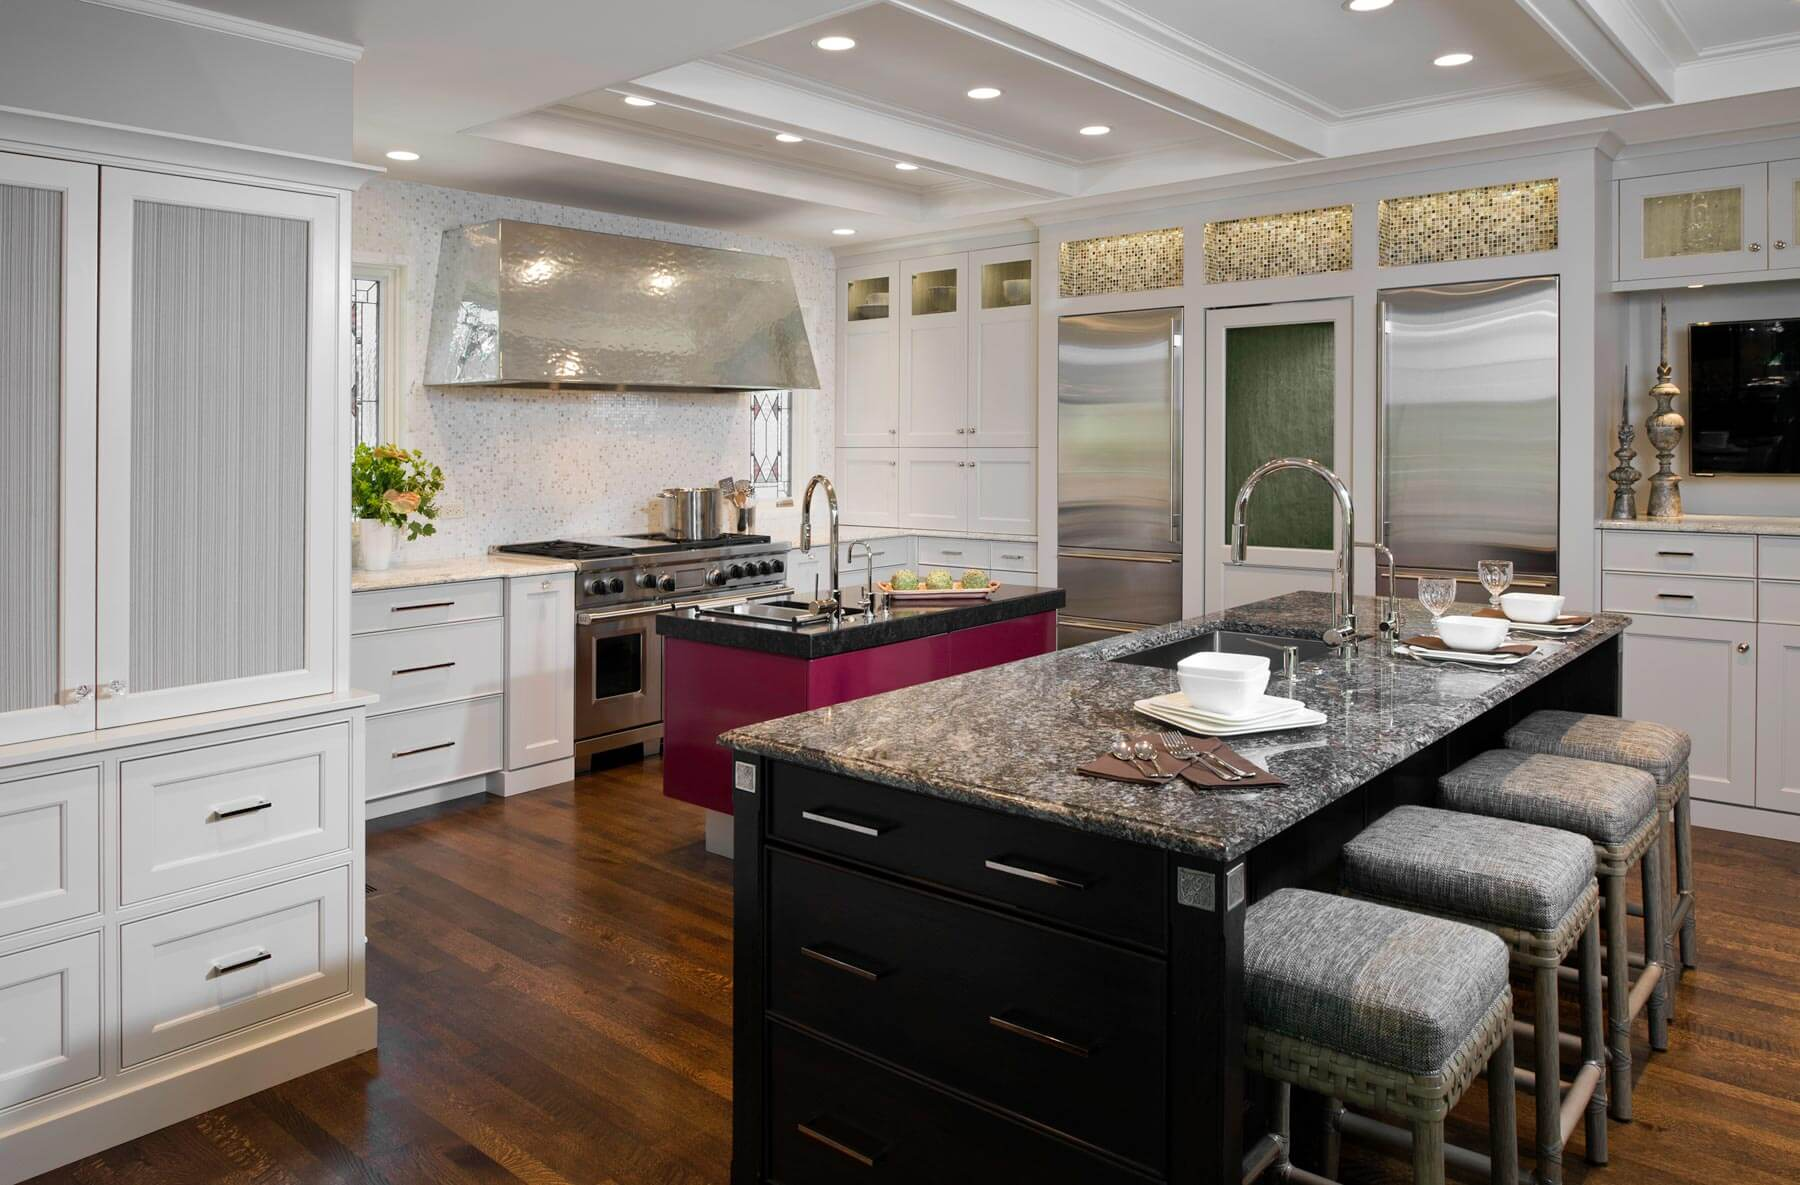 Modern open design kitchen features both an immense black wood island with granite countertop and a smaller magenta island with built-in sink and thick dark slab countertop. Steel appliances and white cabinetry surround.